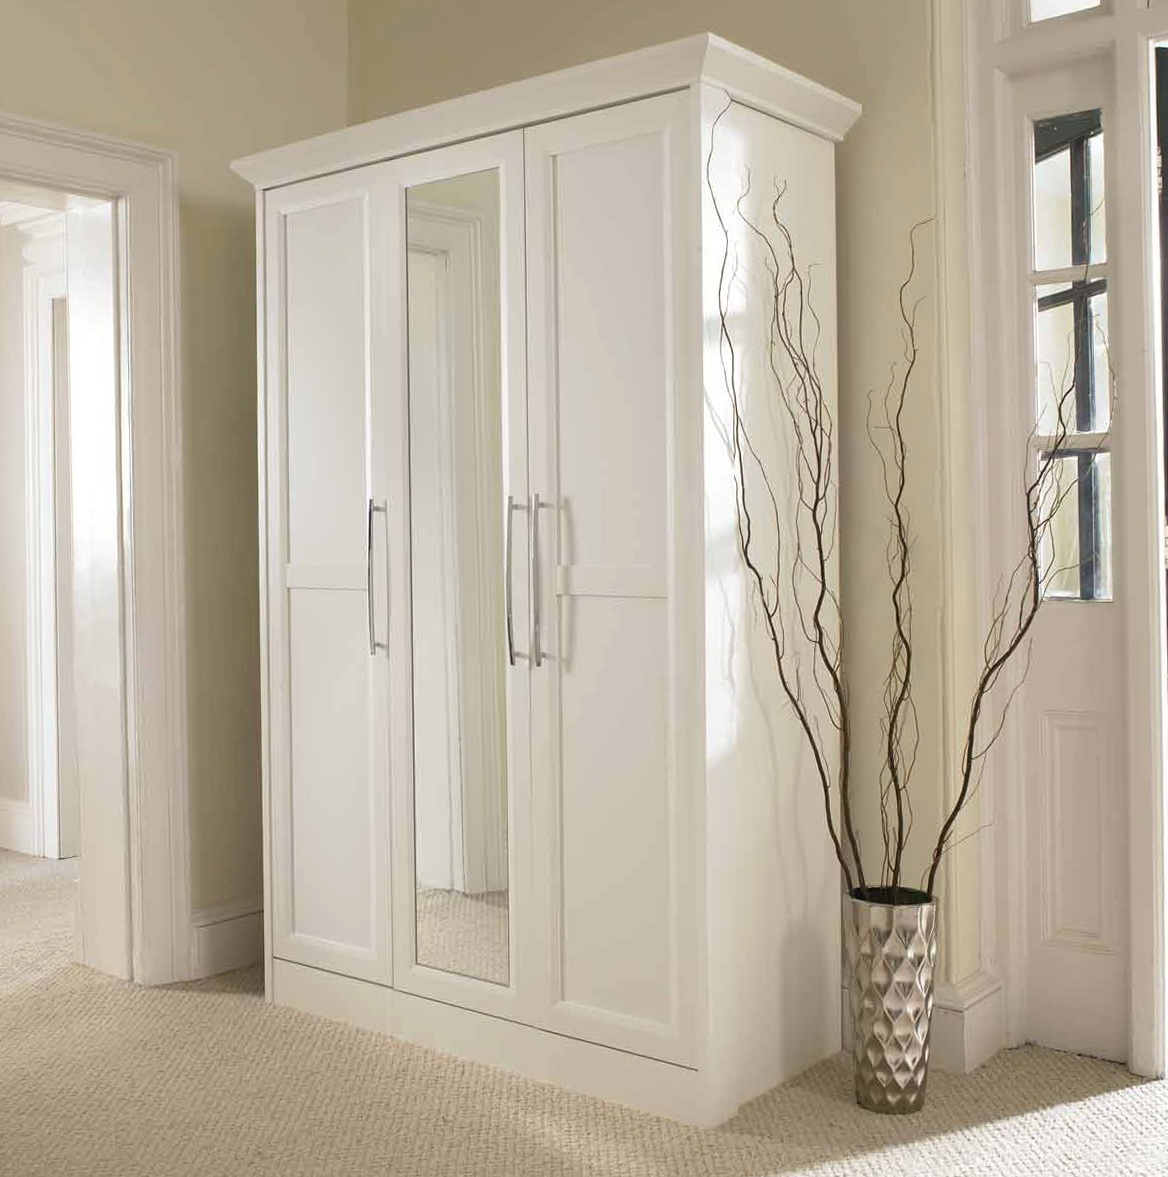 Cheap Wardrobe Armoires | Mirrored Wardrobe Armoire | Cheap Wardrobe Closet